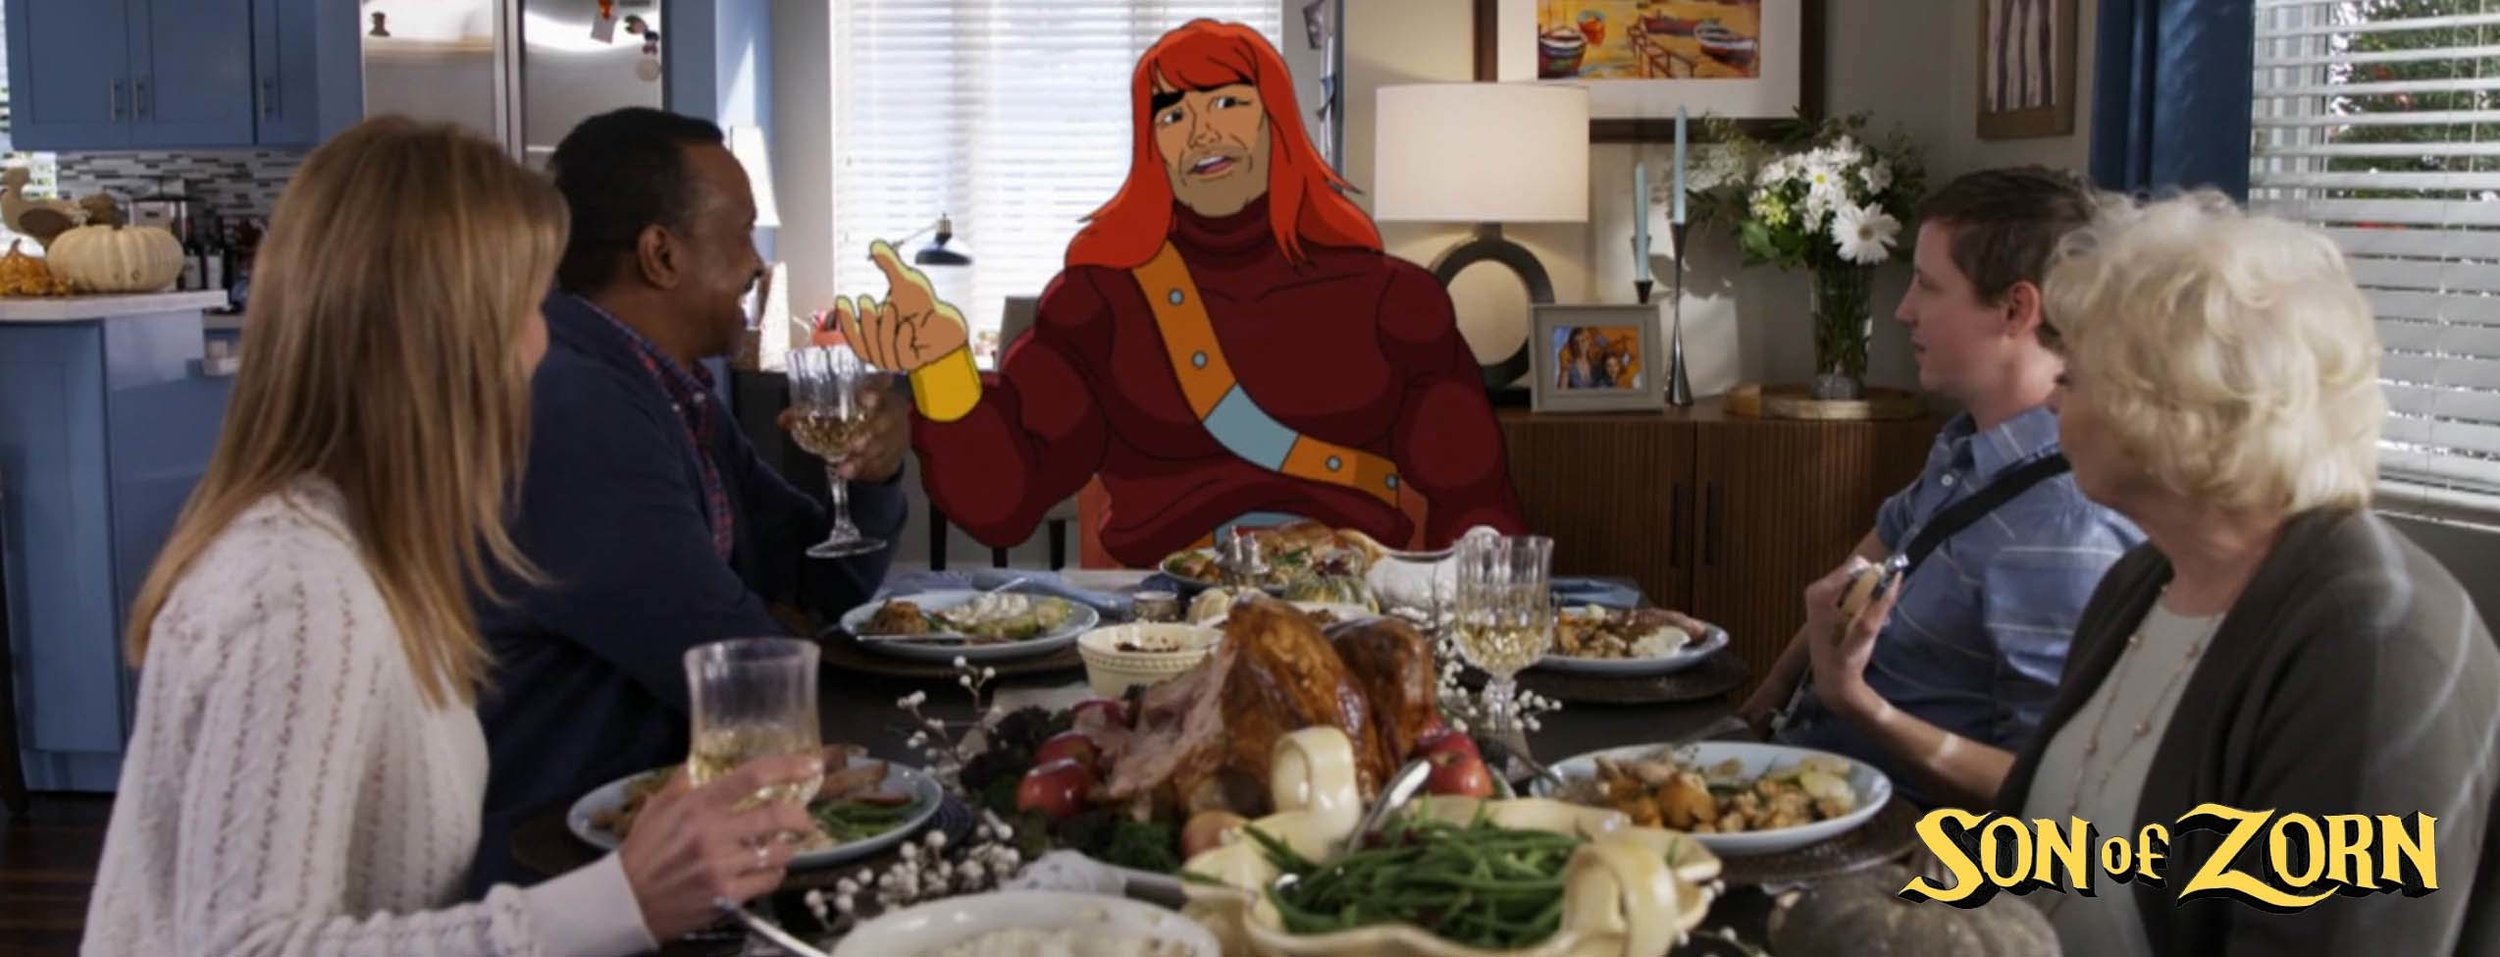 Zorn Thanksgiving w logo.jpg